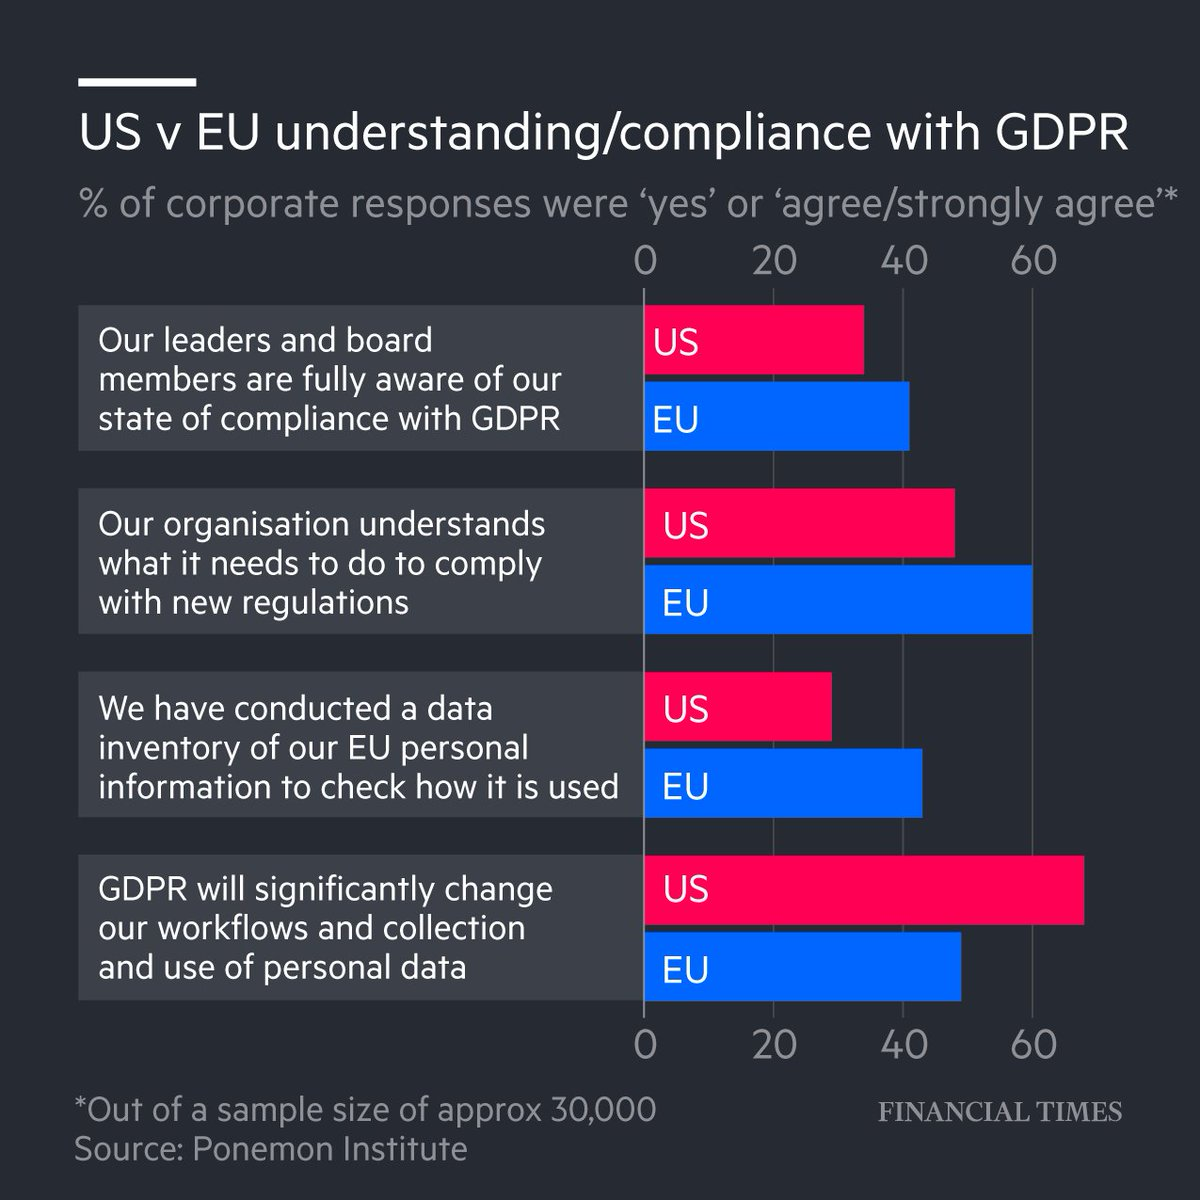 US companies are more scared and less prepared than their European counterparts for the EU data privacy rules coming into force on Friday.   Here's more: https://t.co/POYZzQjjEZ